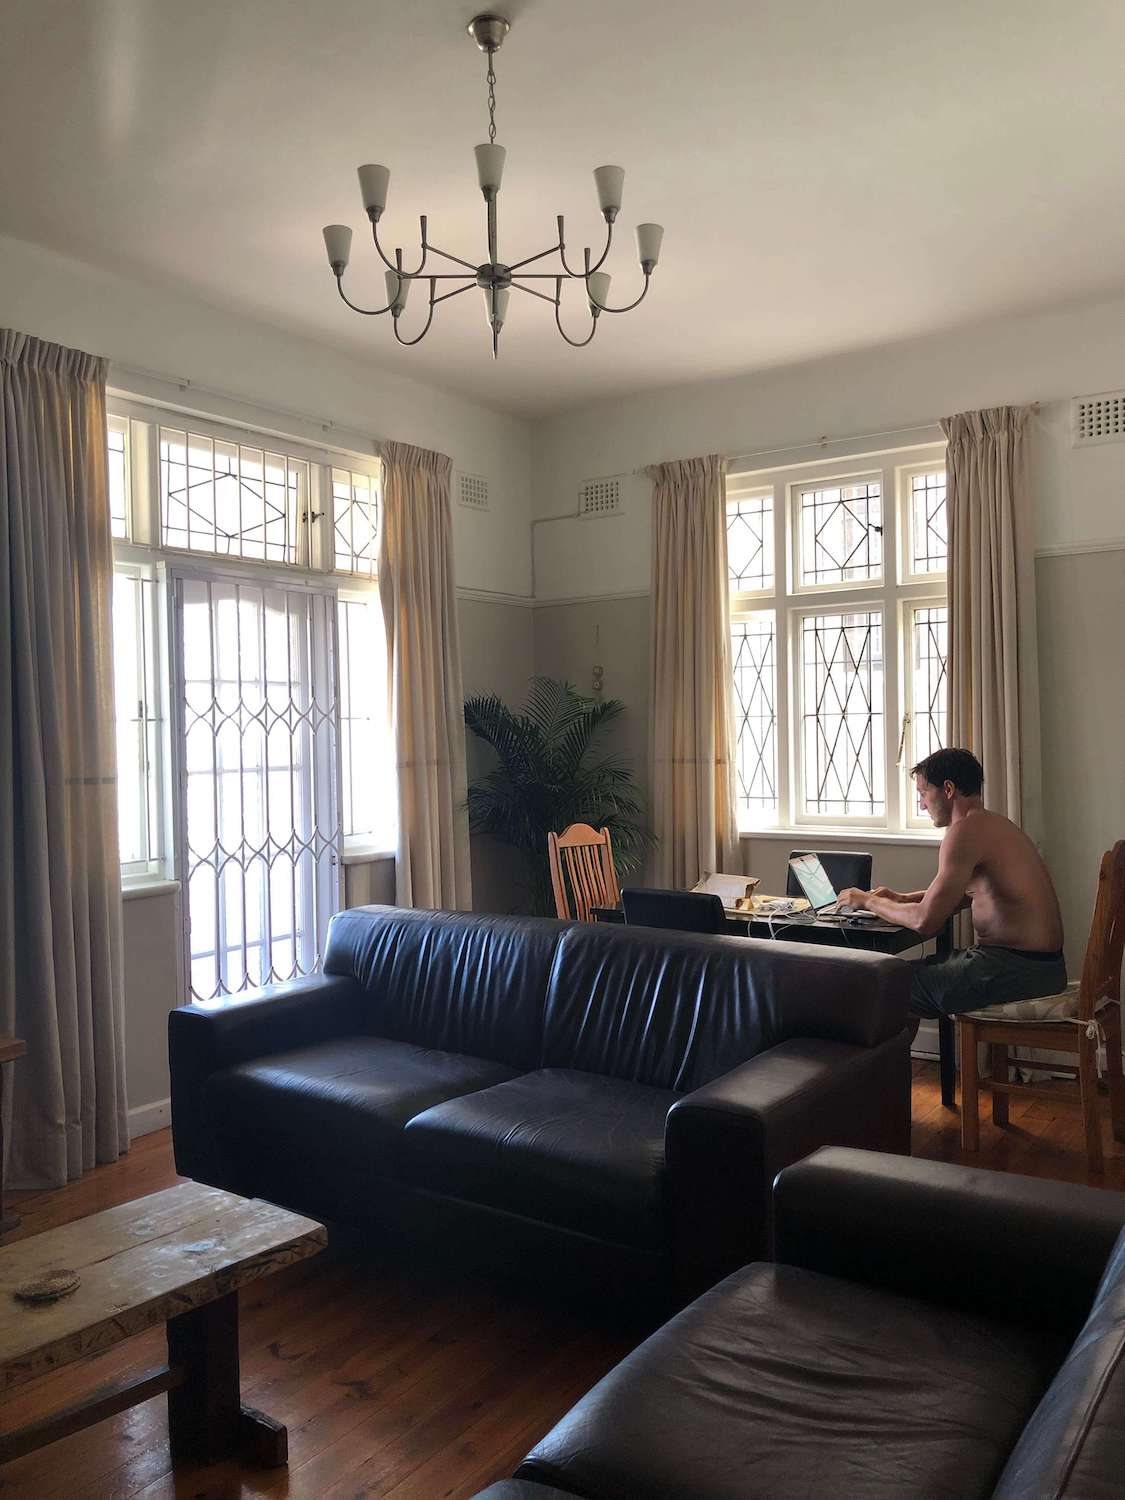 Chris in Airbnb looking for apartments in Cape Town